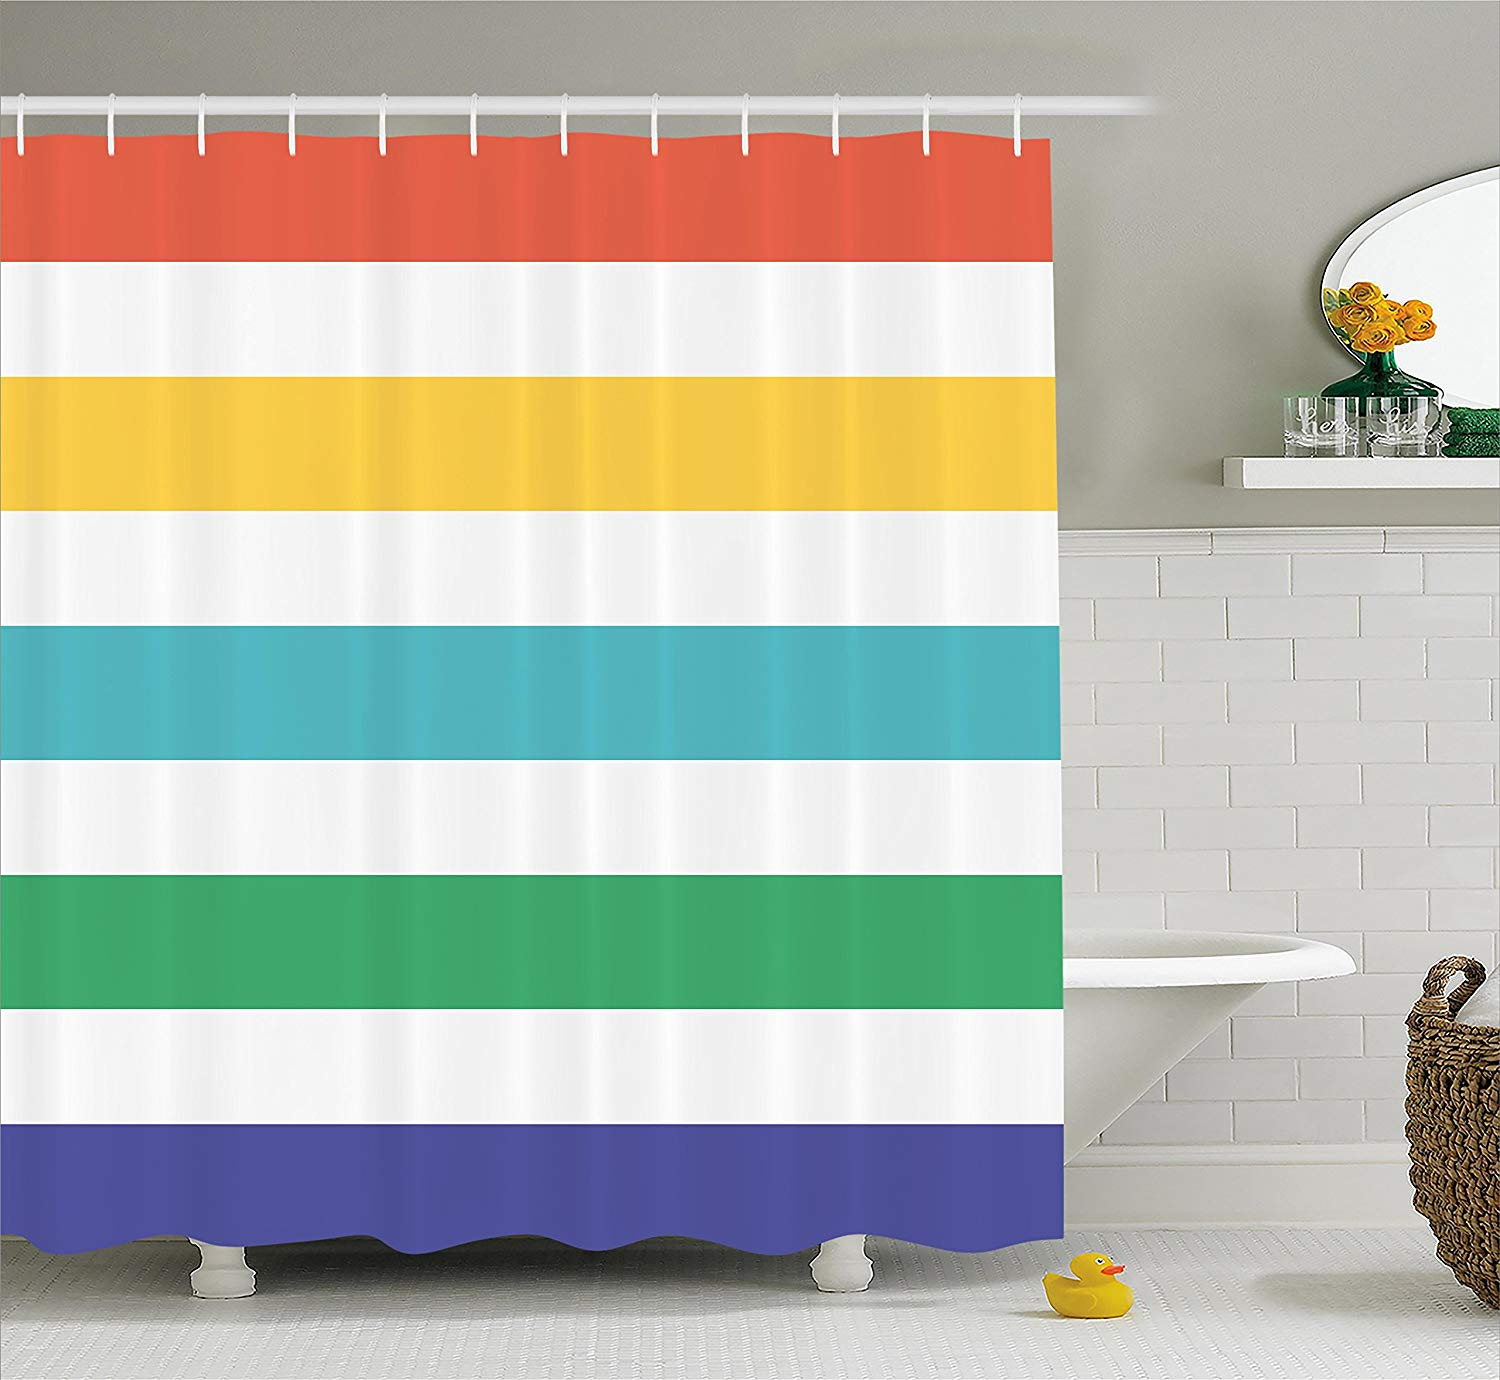 Us 16 24 35 Off Striped Shower Curtain Rainbow Colored And White Fun Horizontal Lines Kids Room Red Yellow Blue Green Fabric Bathroom Decor In